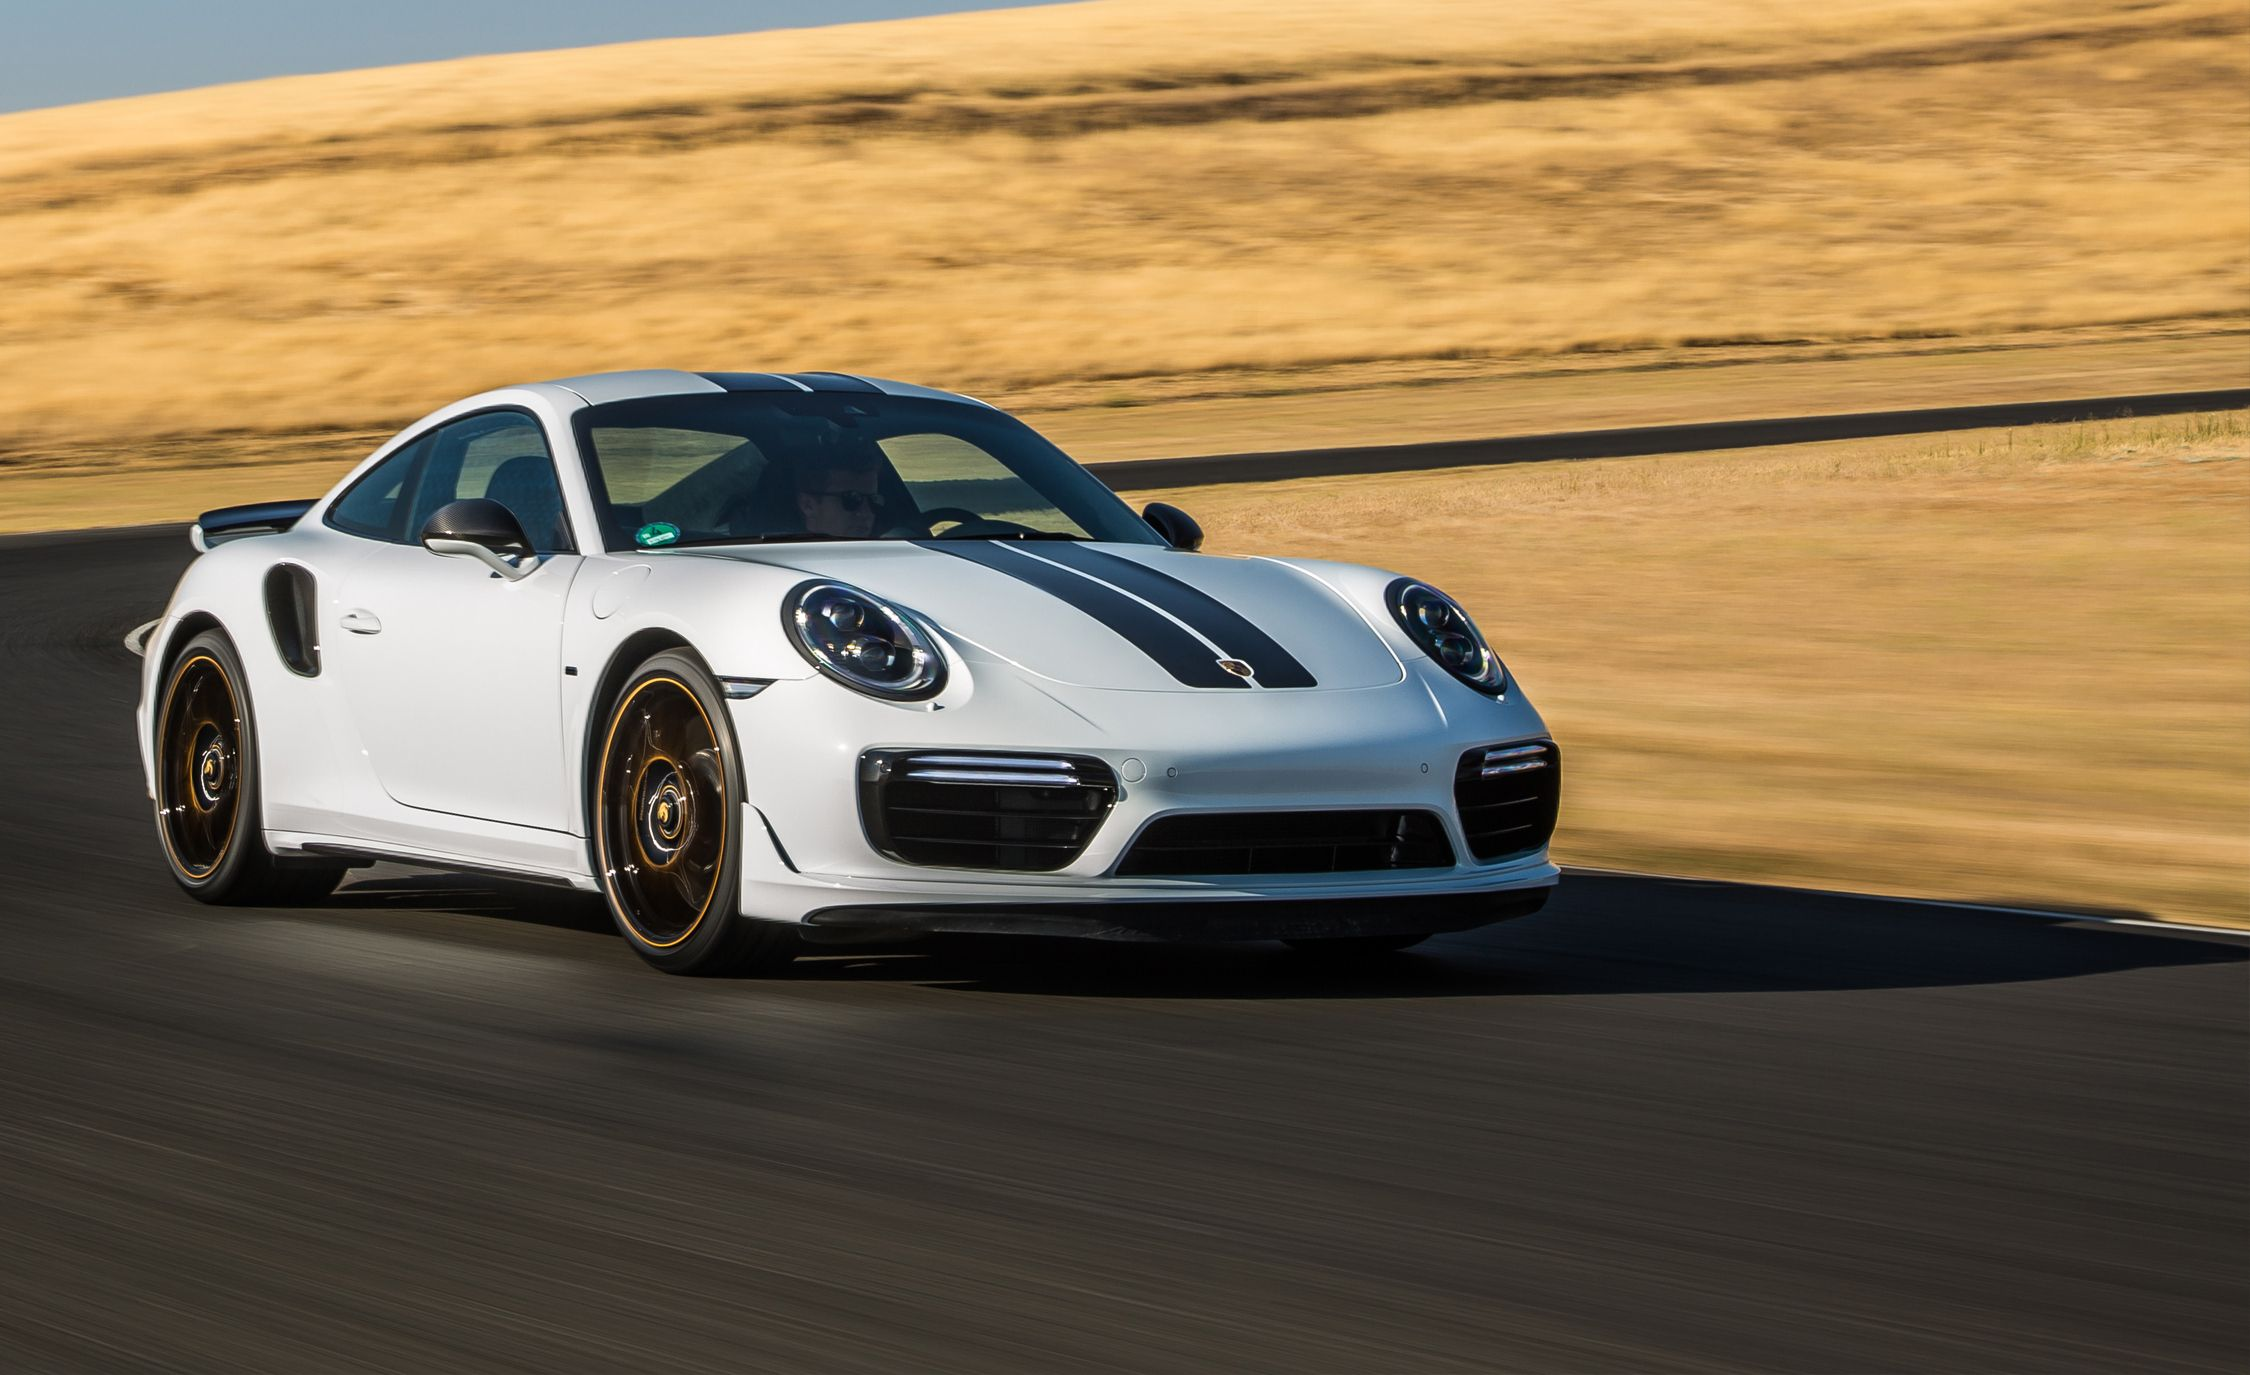 2018 Porsche 911 Turbo S Exclusive First Drive Review